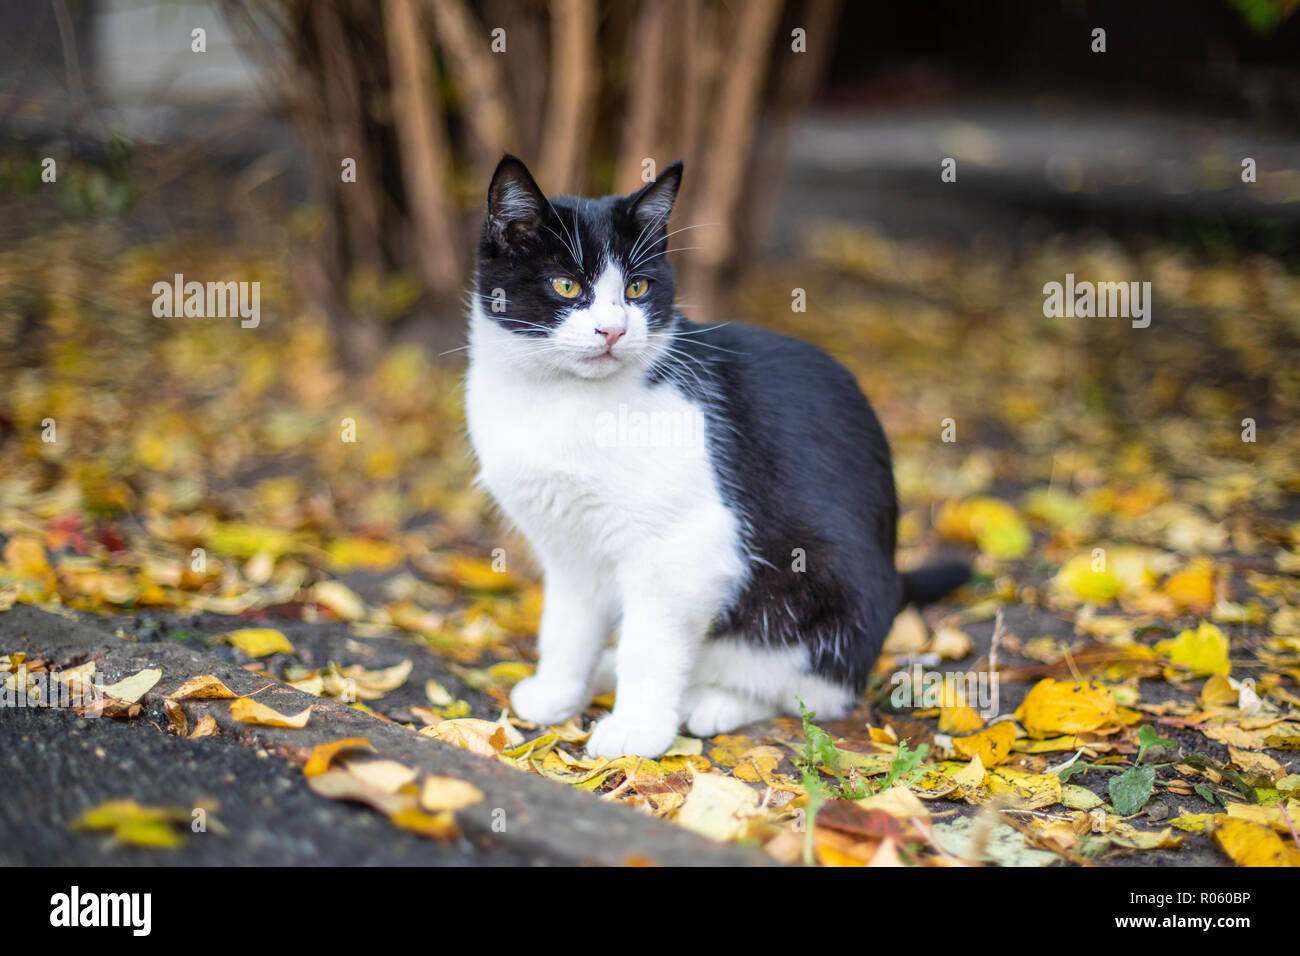 Cat is sitting on the street. Yellow leaves - Stock Image